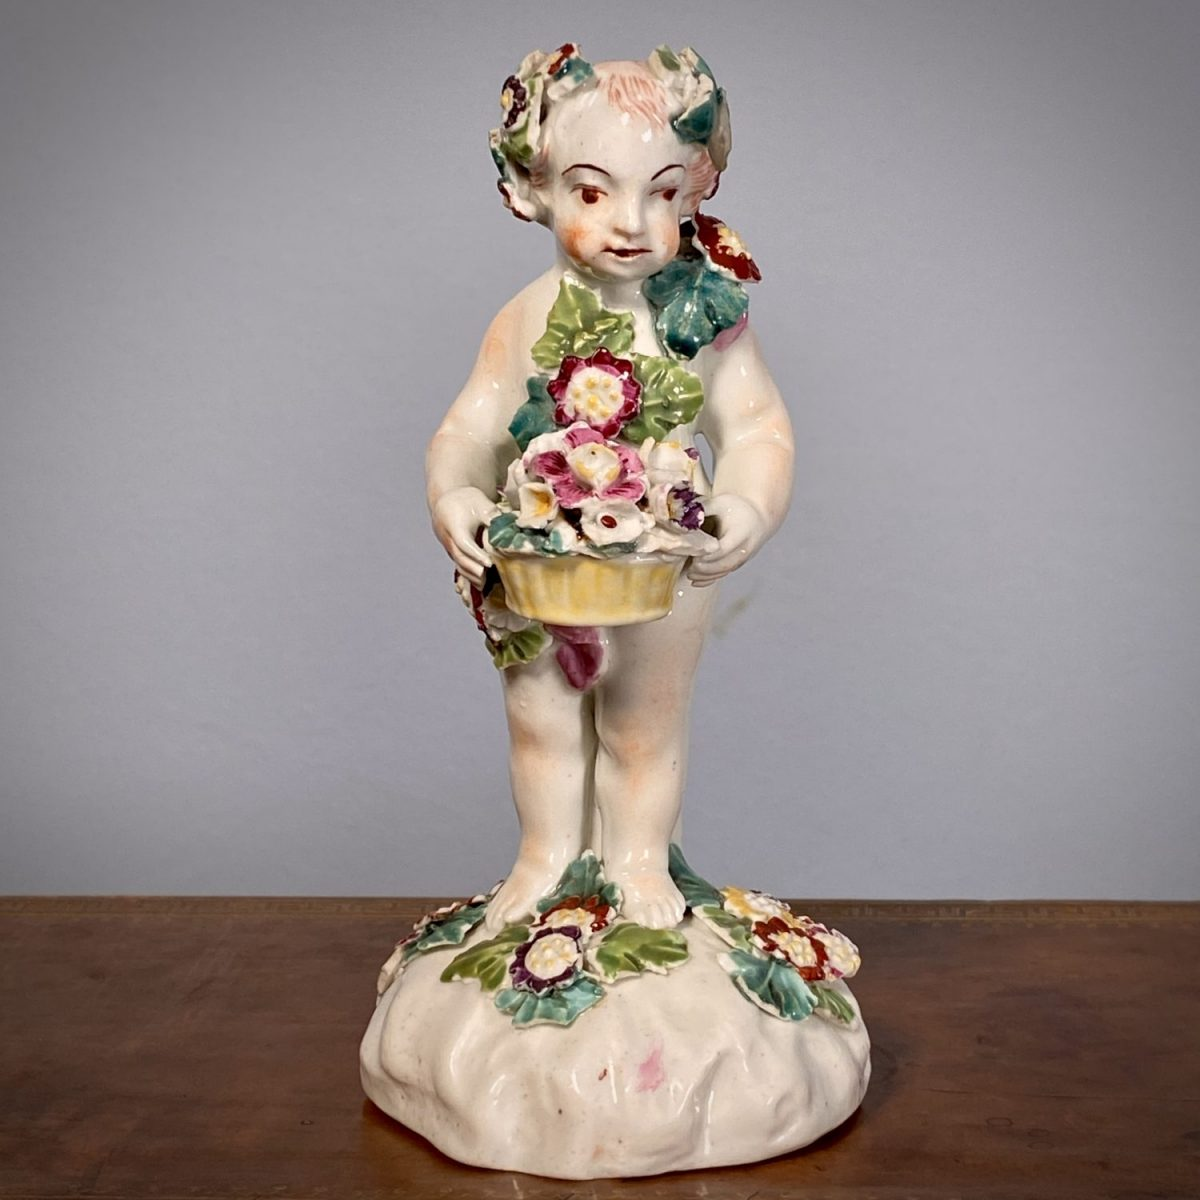 C18th Derby Figure of a Putto Holding a Basket of Flowers